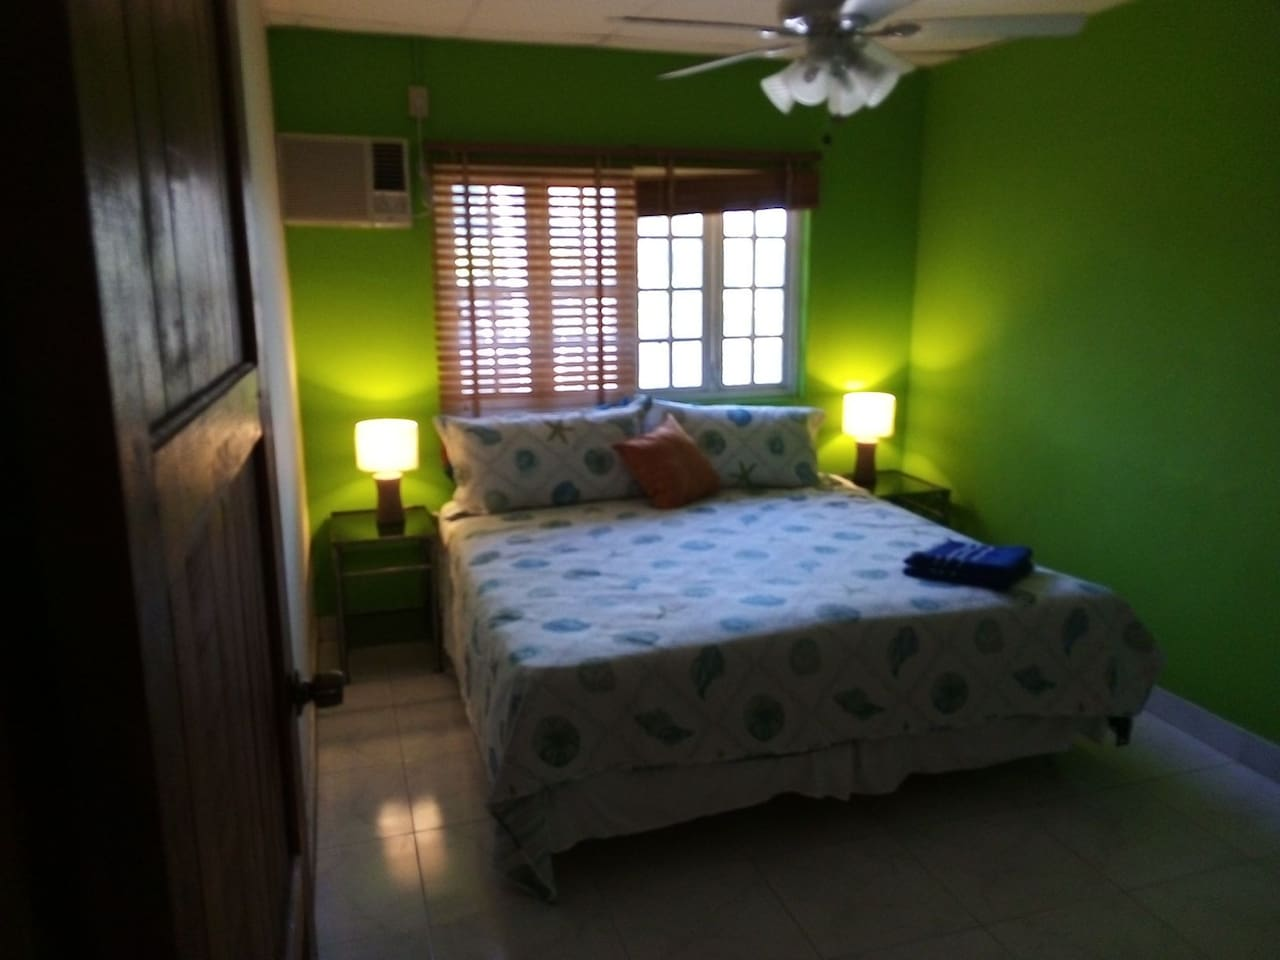 Private room in house with private bathroom, tv, air conditioning, use of kitchen, wifi, huge porch, outdoor BBQ area. 5 minutes from the beach.